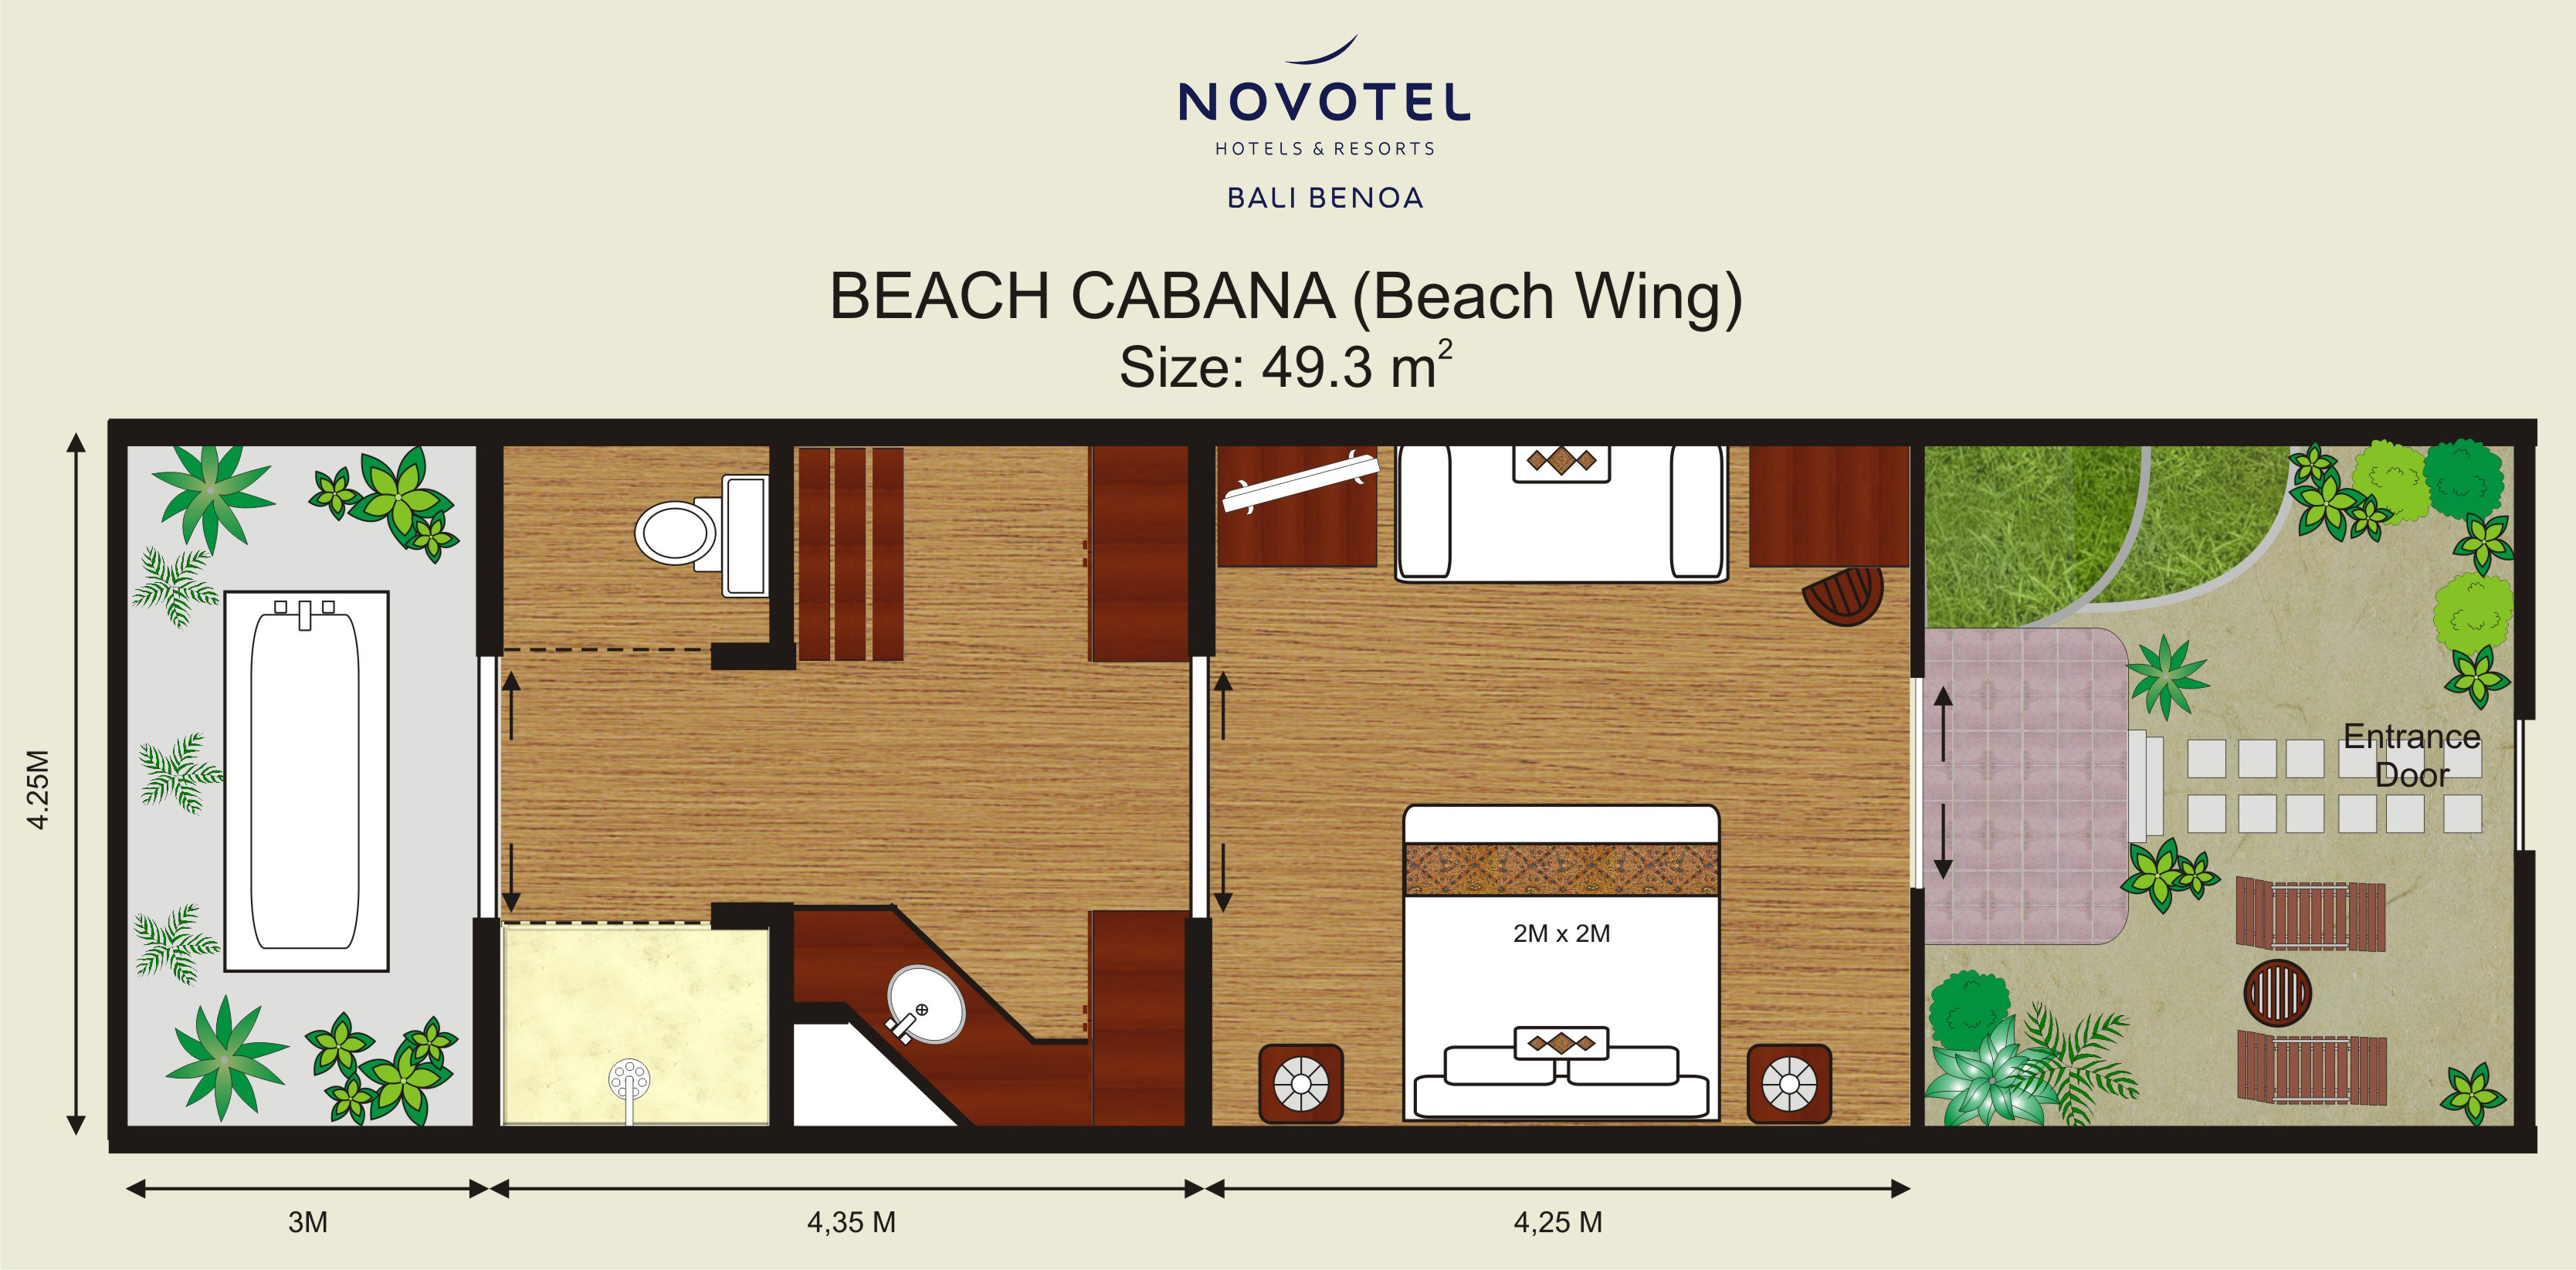 Beach Cabana Novotel Bali Benoa Hotels Amp Resorts